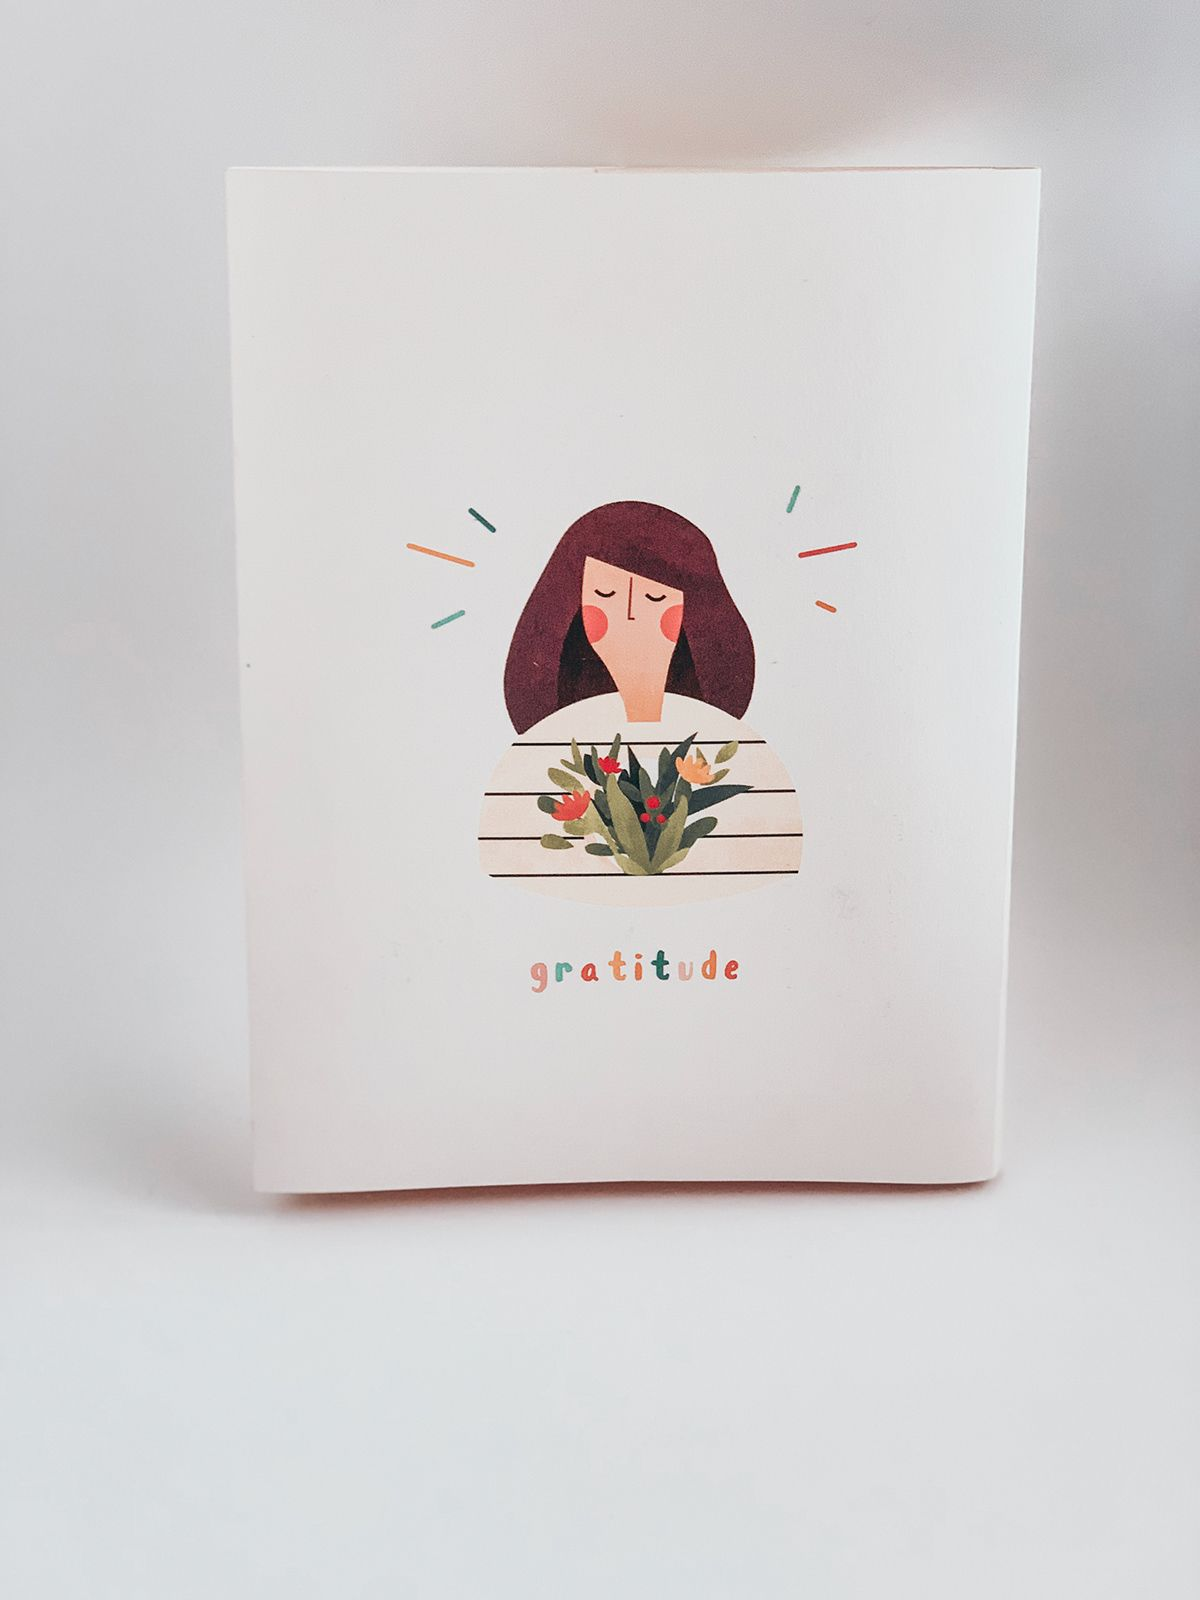 Gratitude Packaging & Merchandise